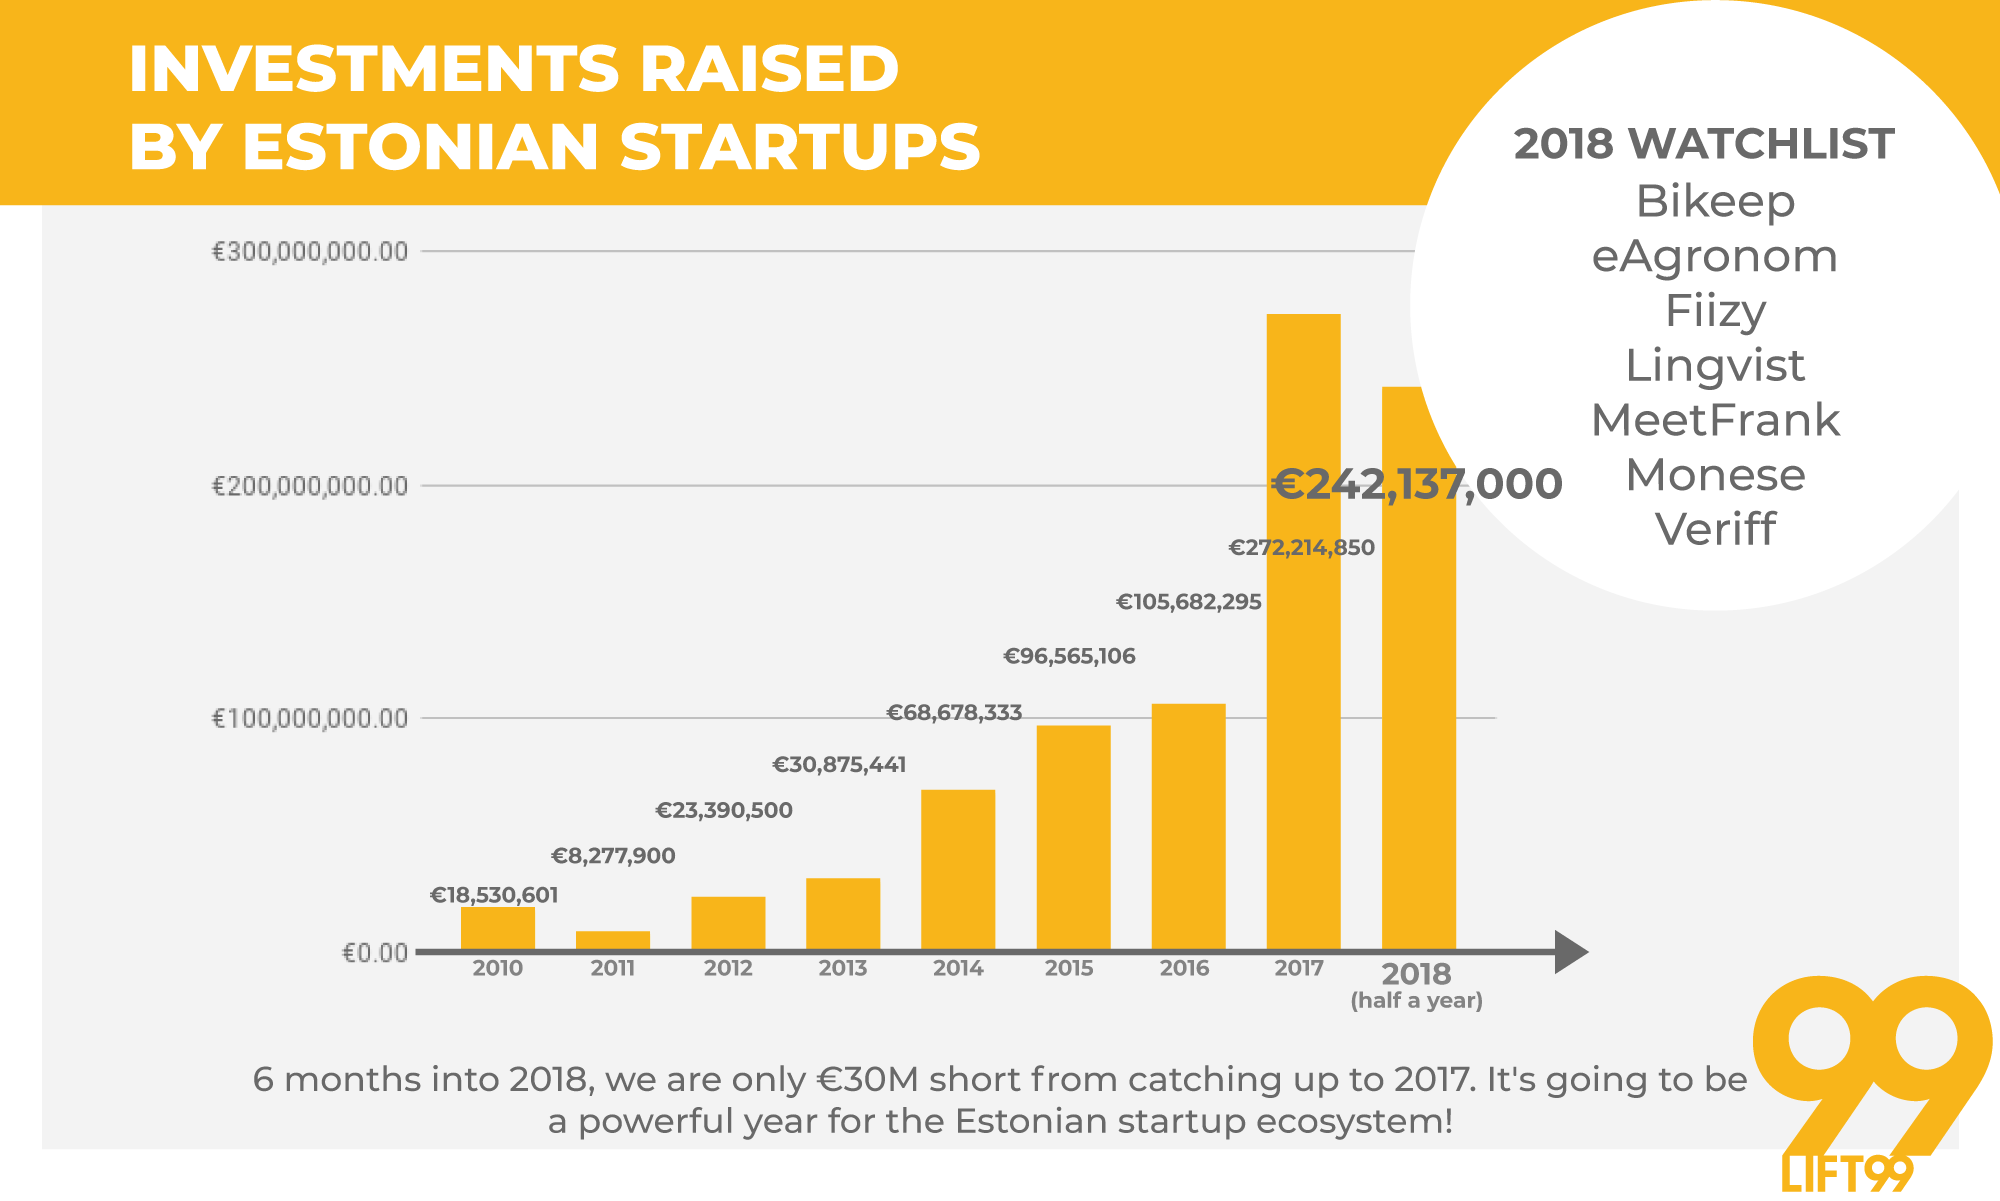 investments-estonian-startups.png